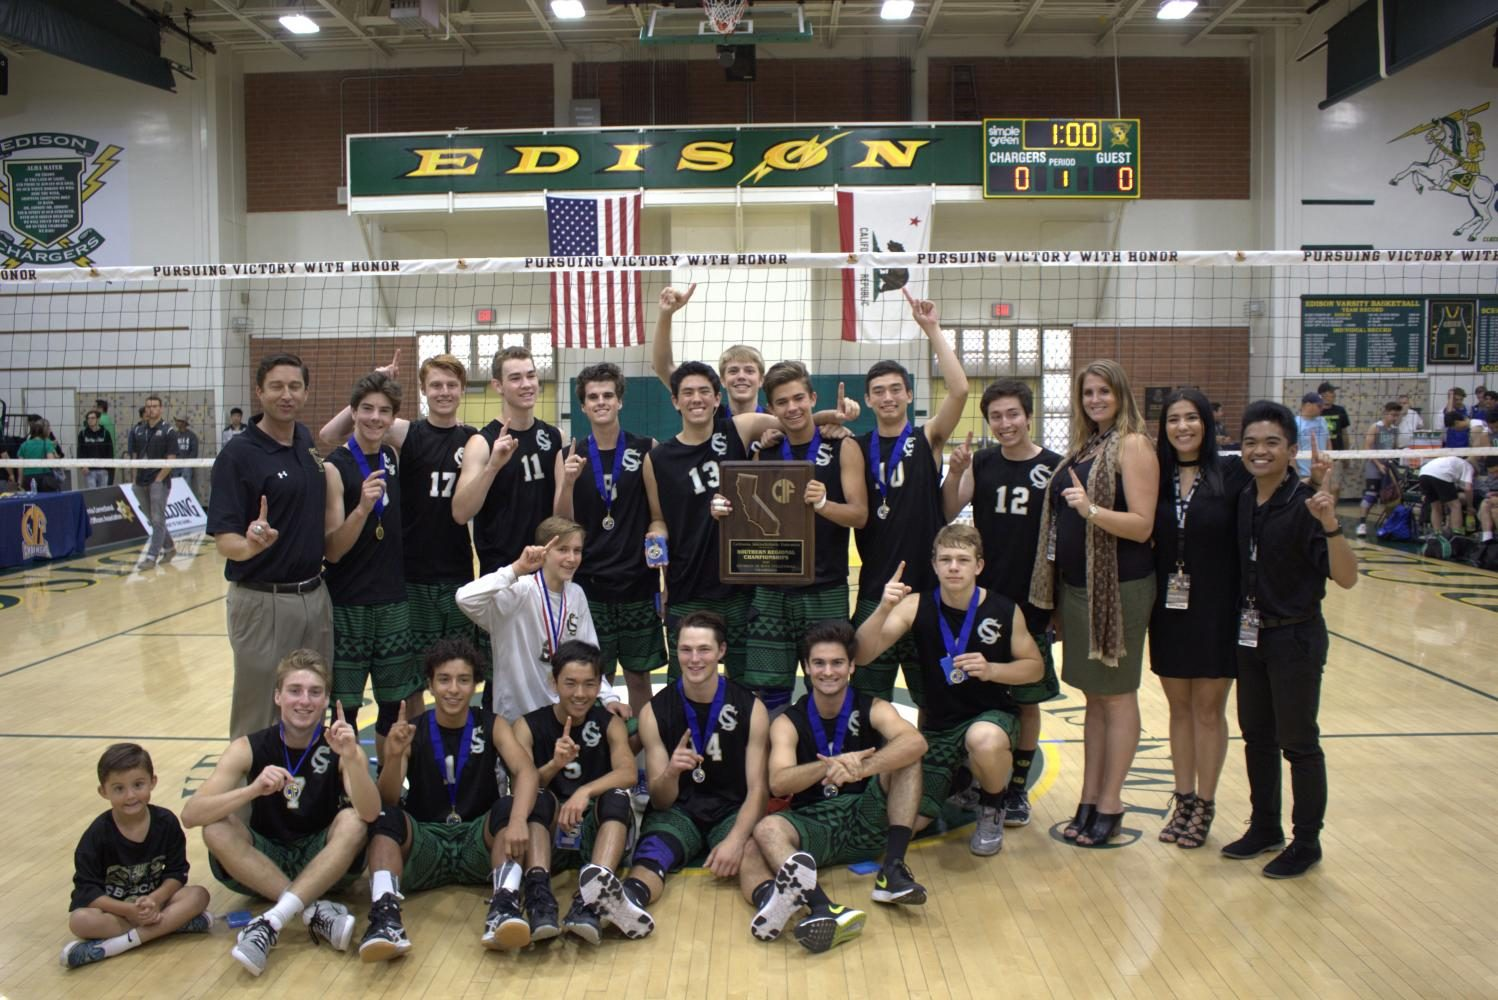 The+Boys+2017+Varsity+Volleyball+team+proudly+displays+their+state+championship+trophy+and+medals